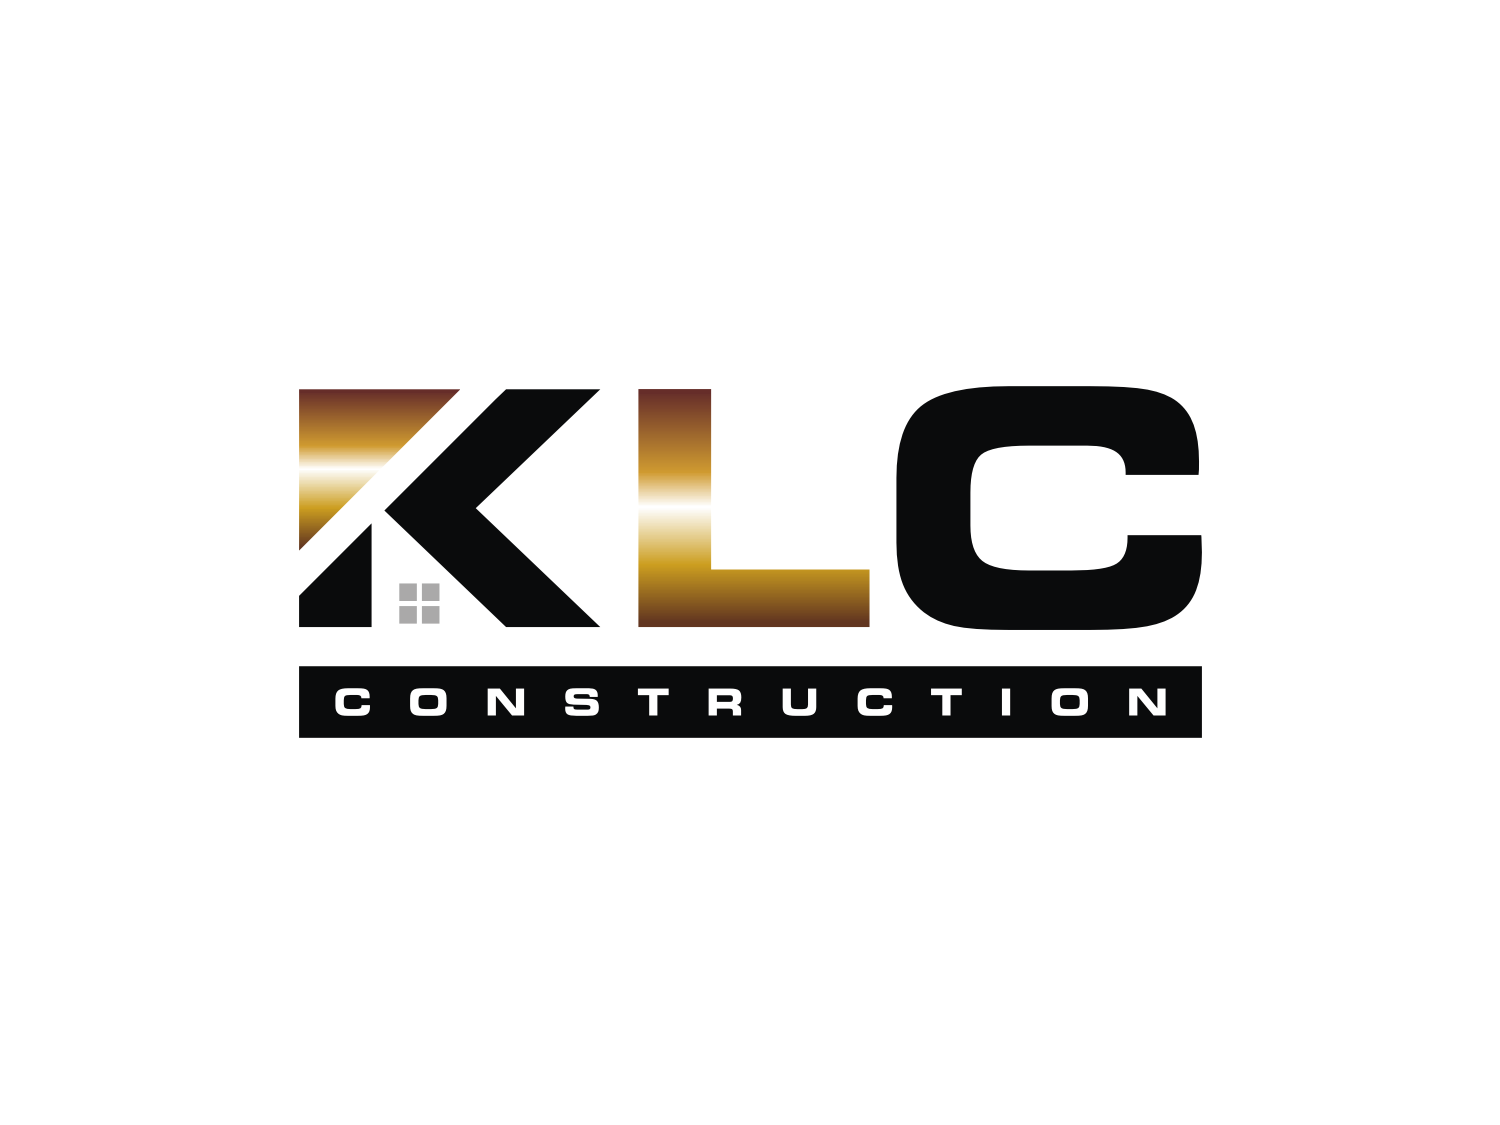 Feminine Bold Residential Construction Logo Design For Klc Construction By R16 Design 13182650,Simple Horse Embroidery Design